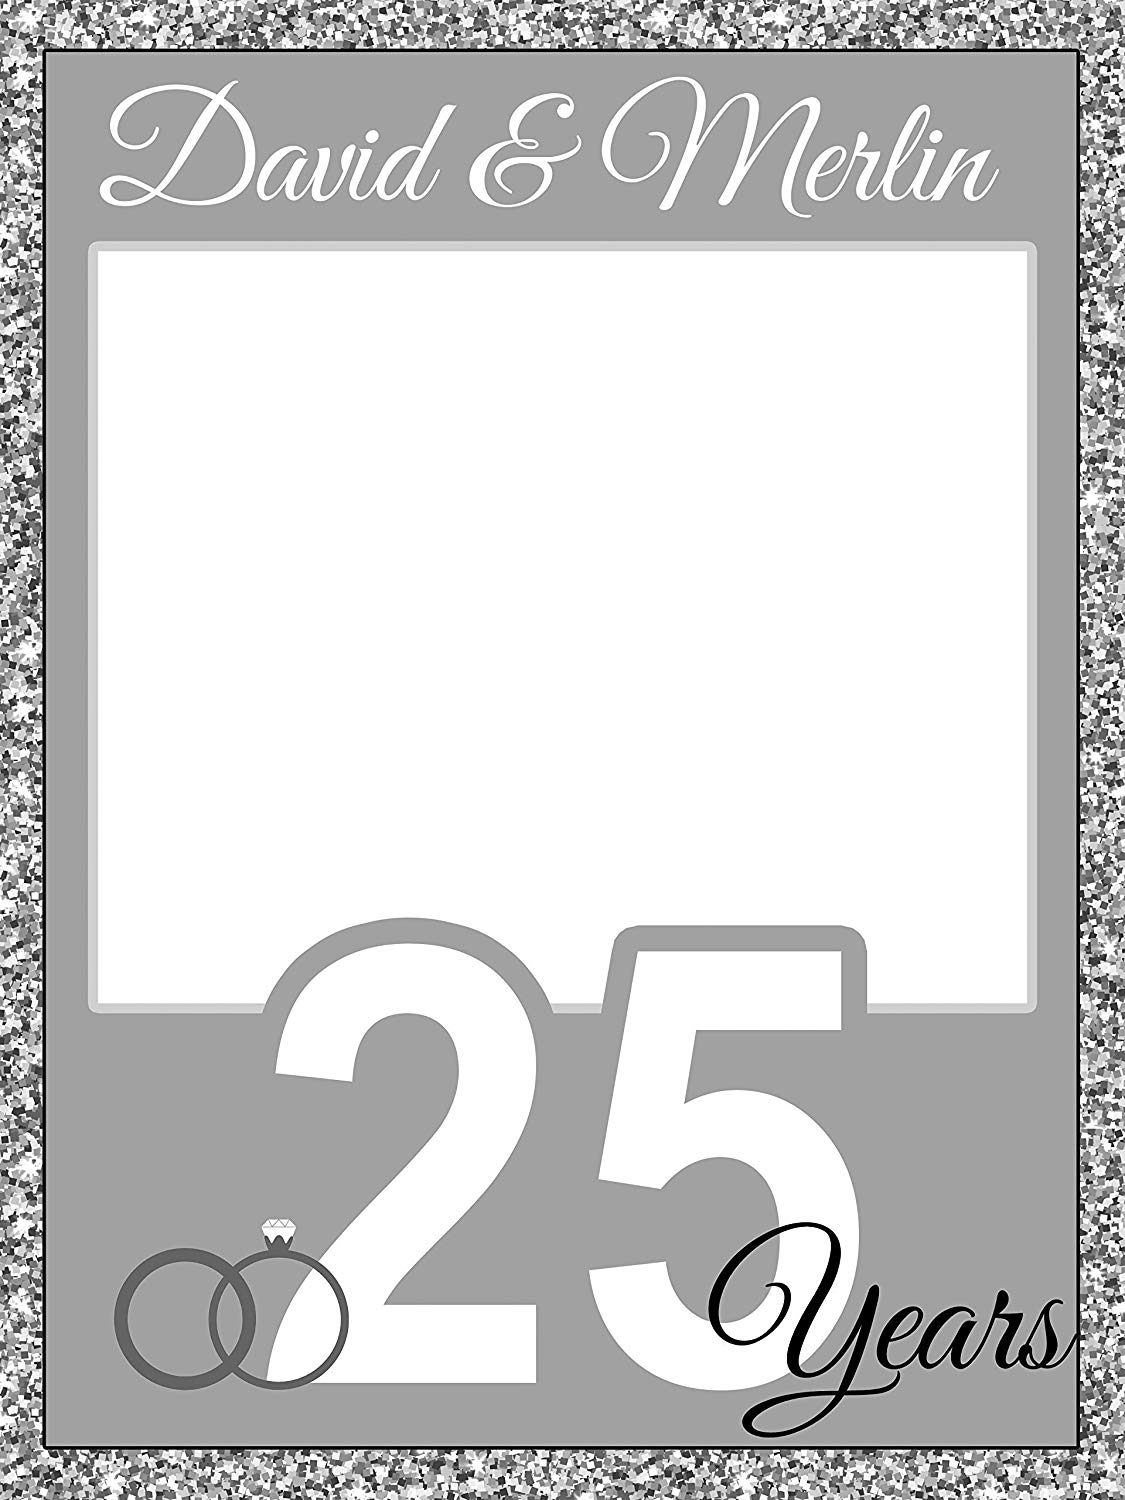 Cheap 25th Anniversary Photo Frame Find 25th Anniversary Photo